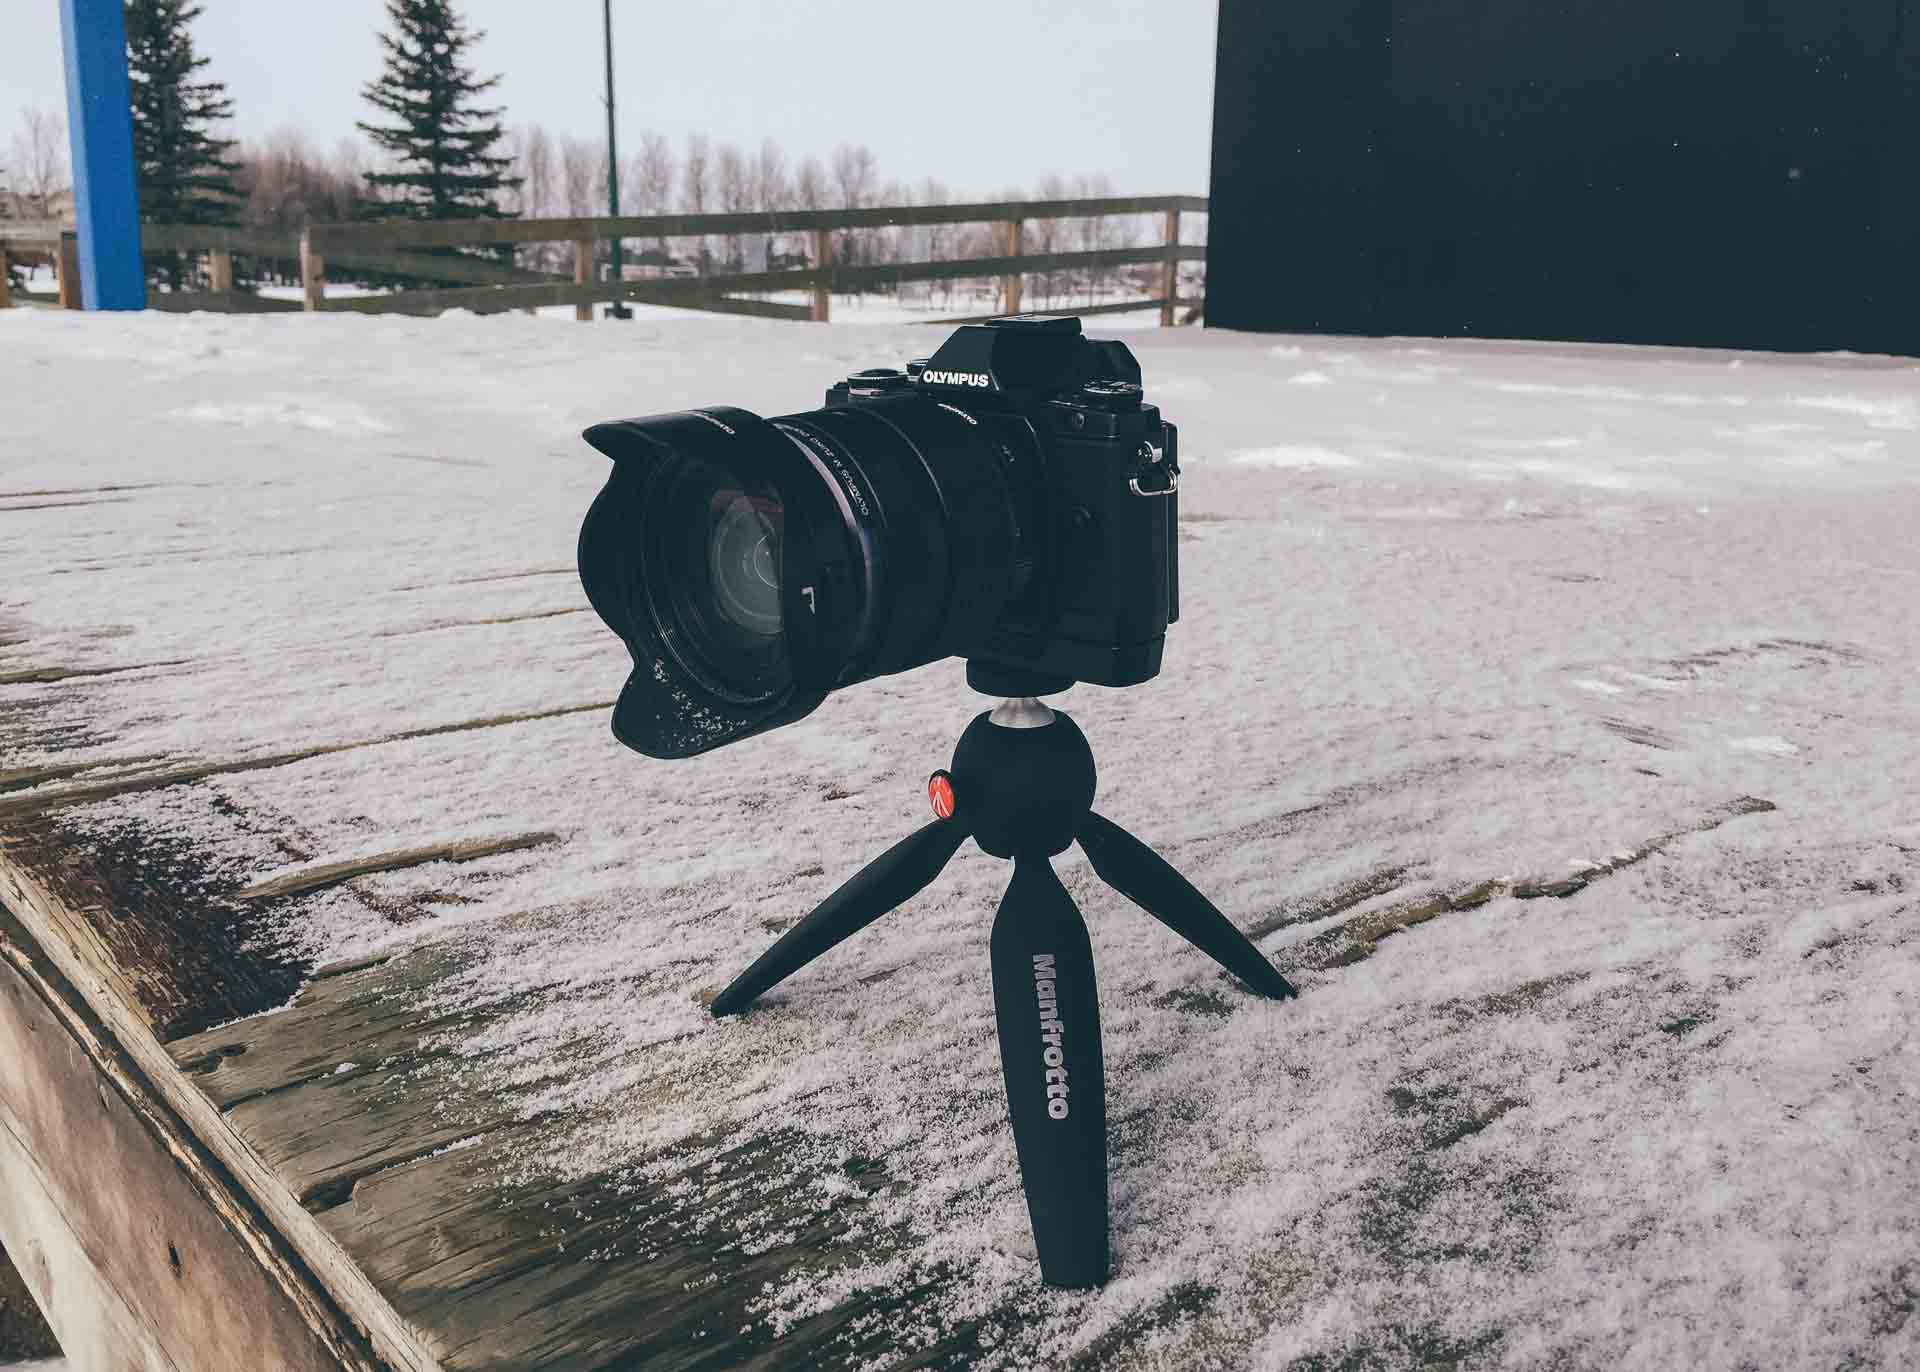 The Manfrotto PIXI Mini Tripod — Tools and Toys